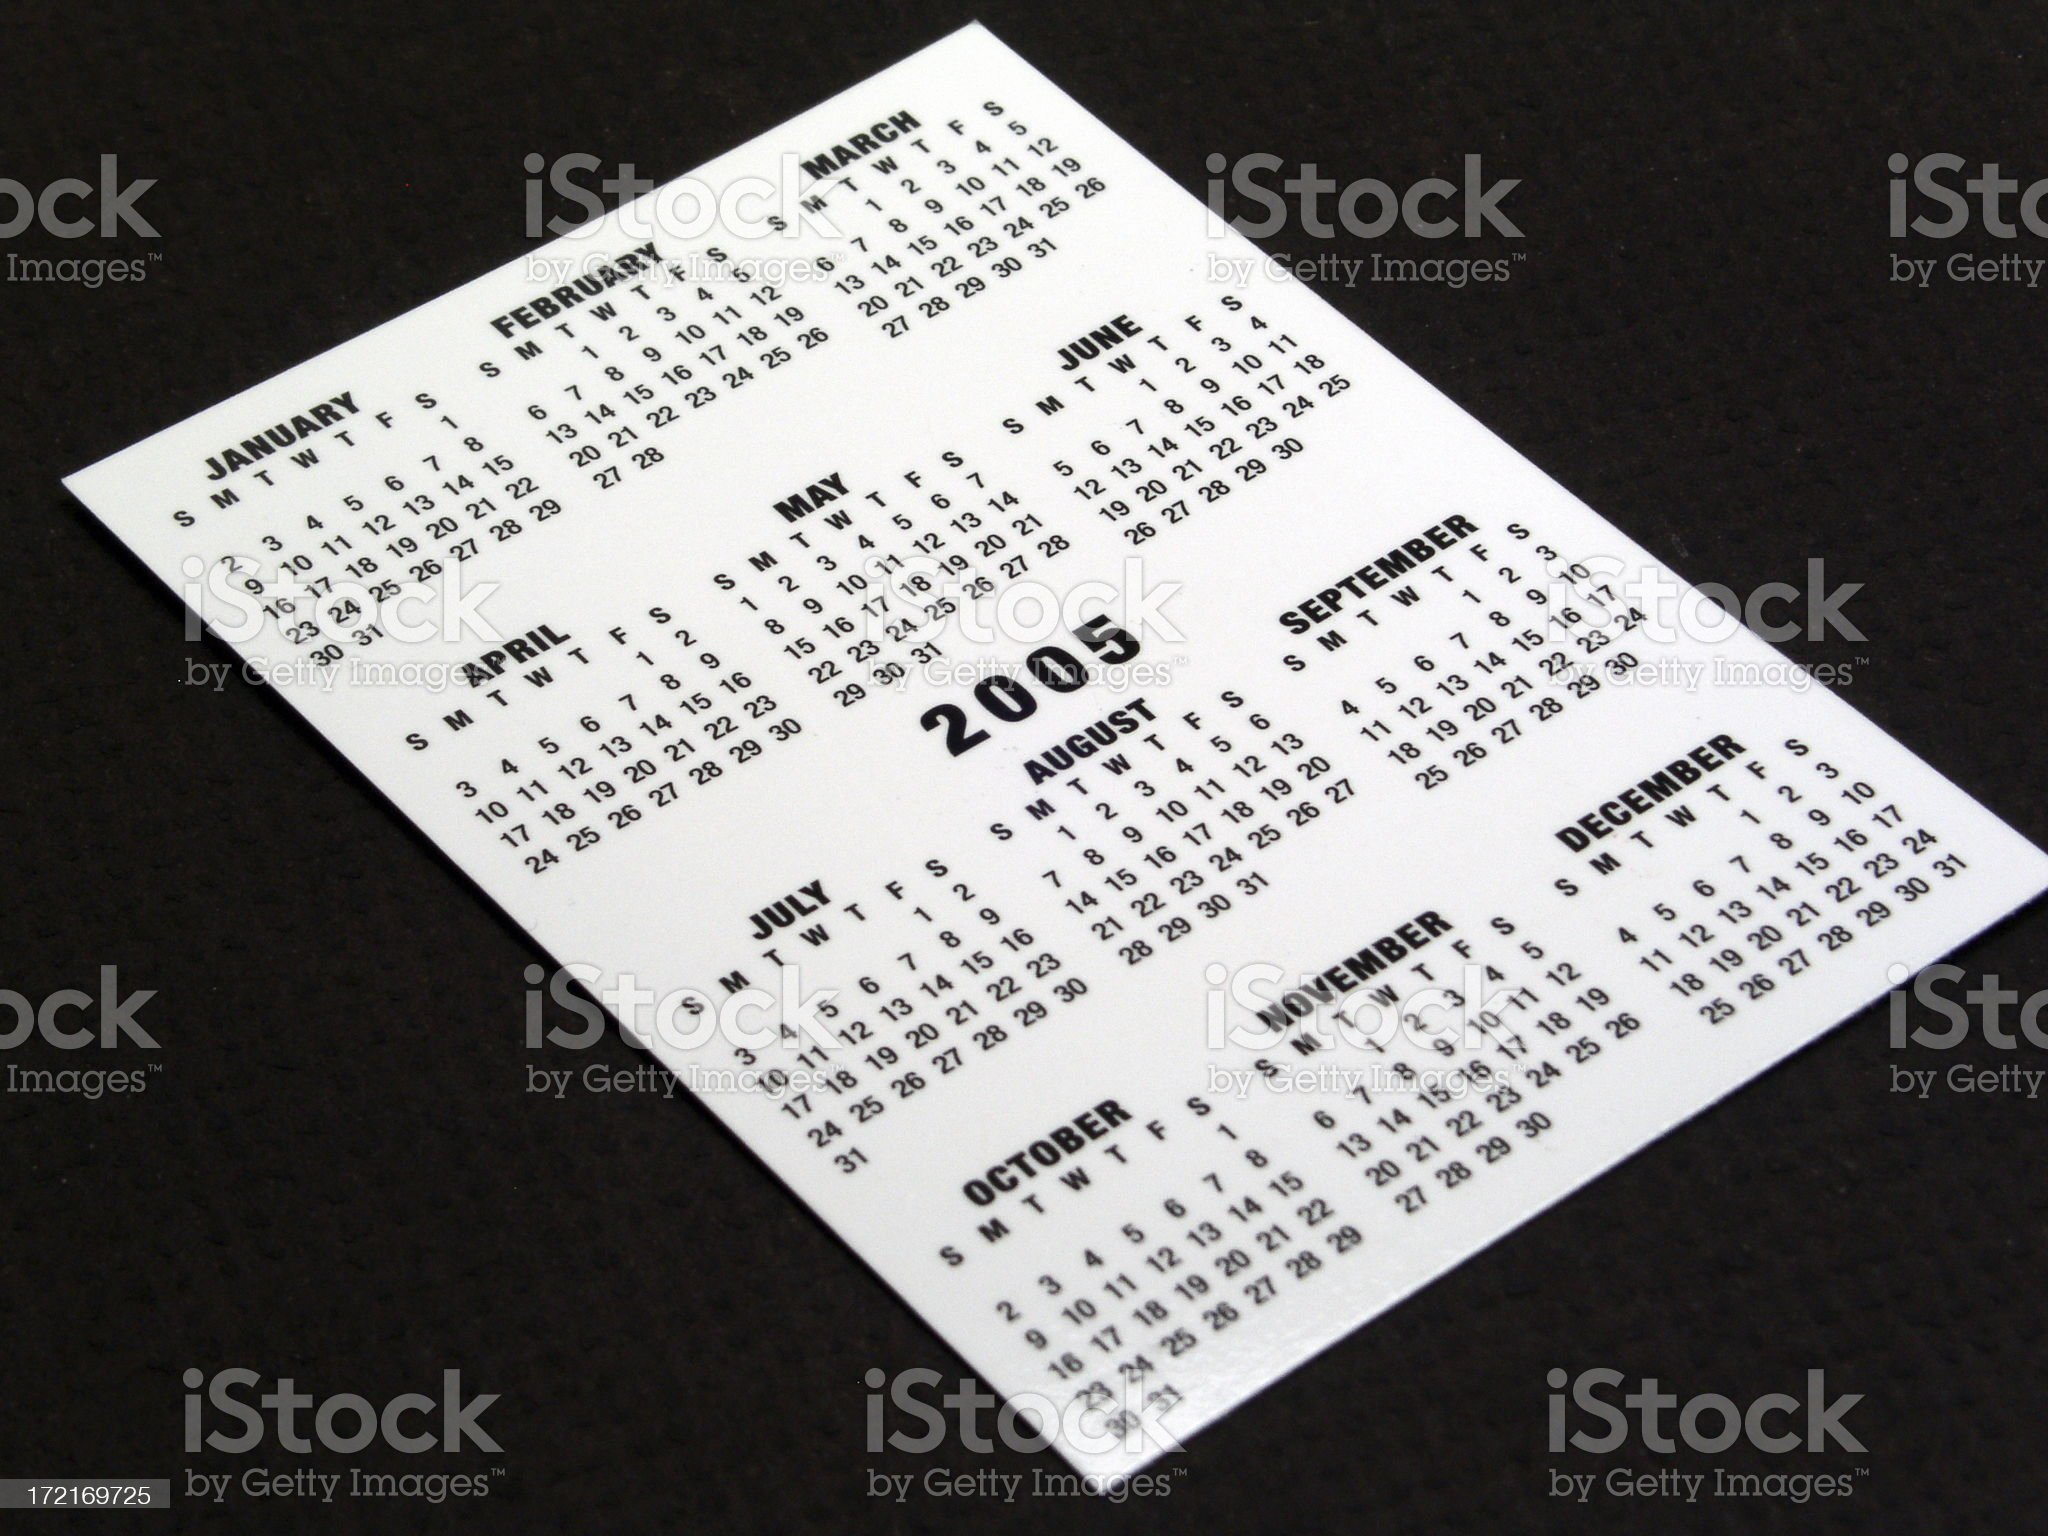 Calender For 2005 royalty-free stock photo